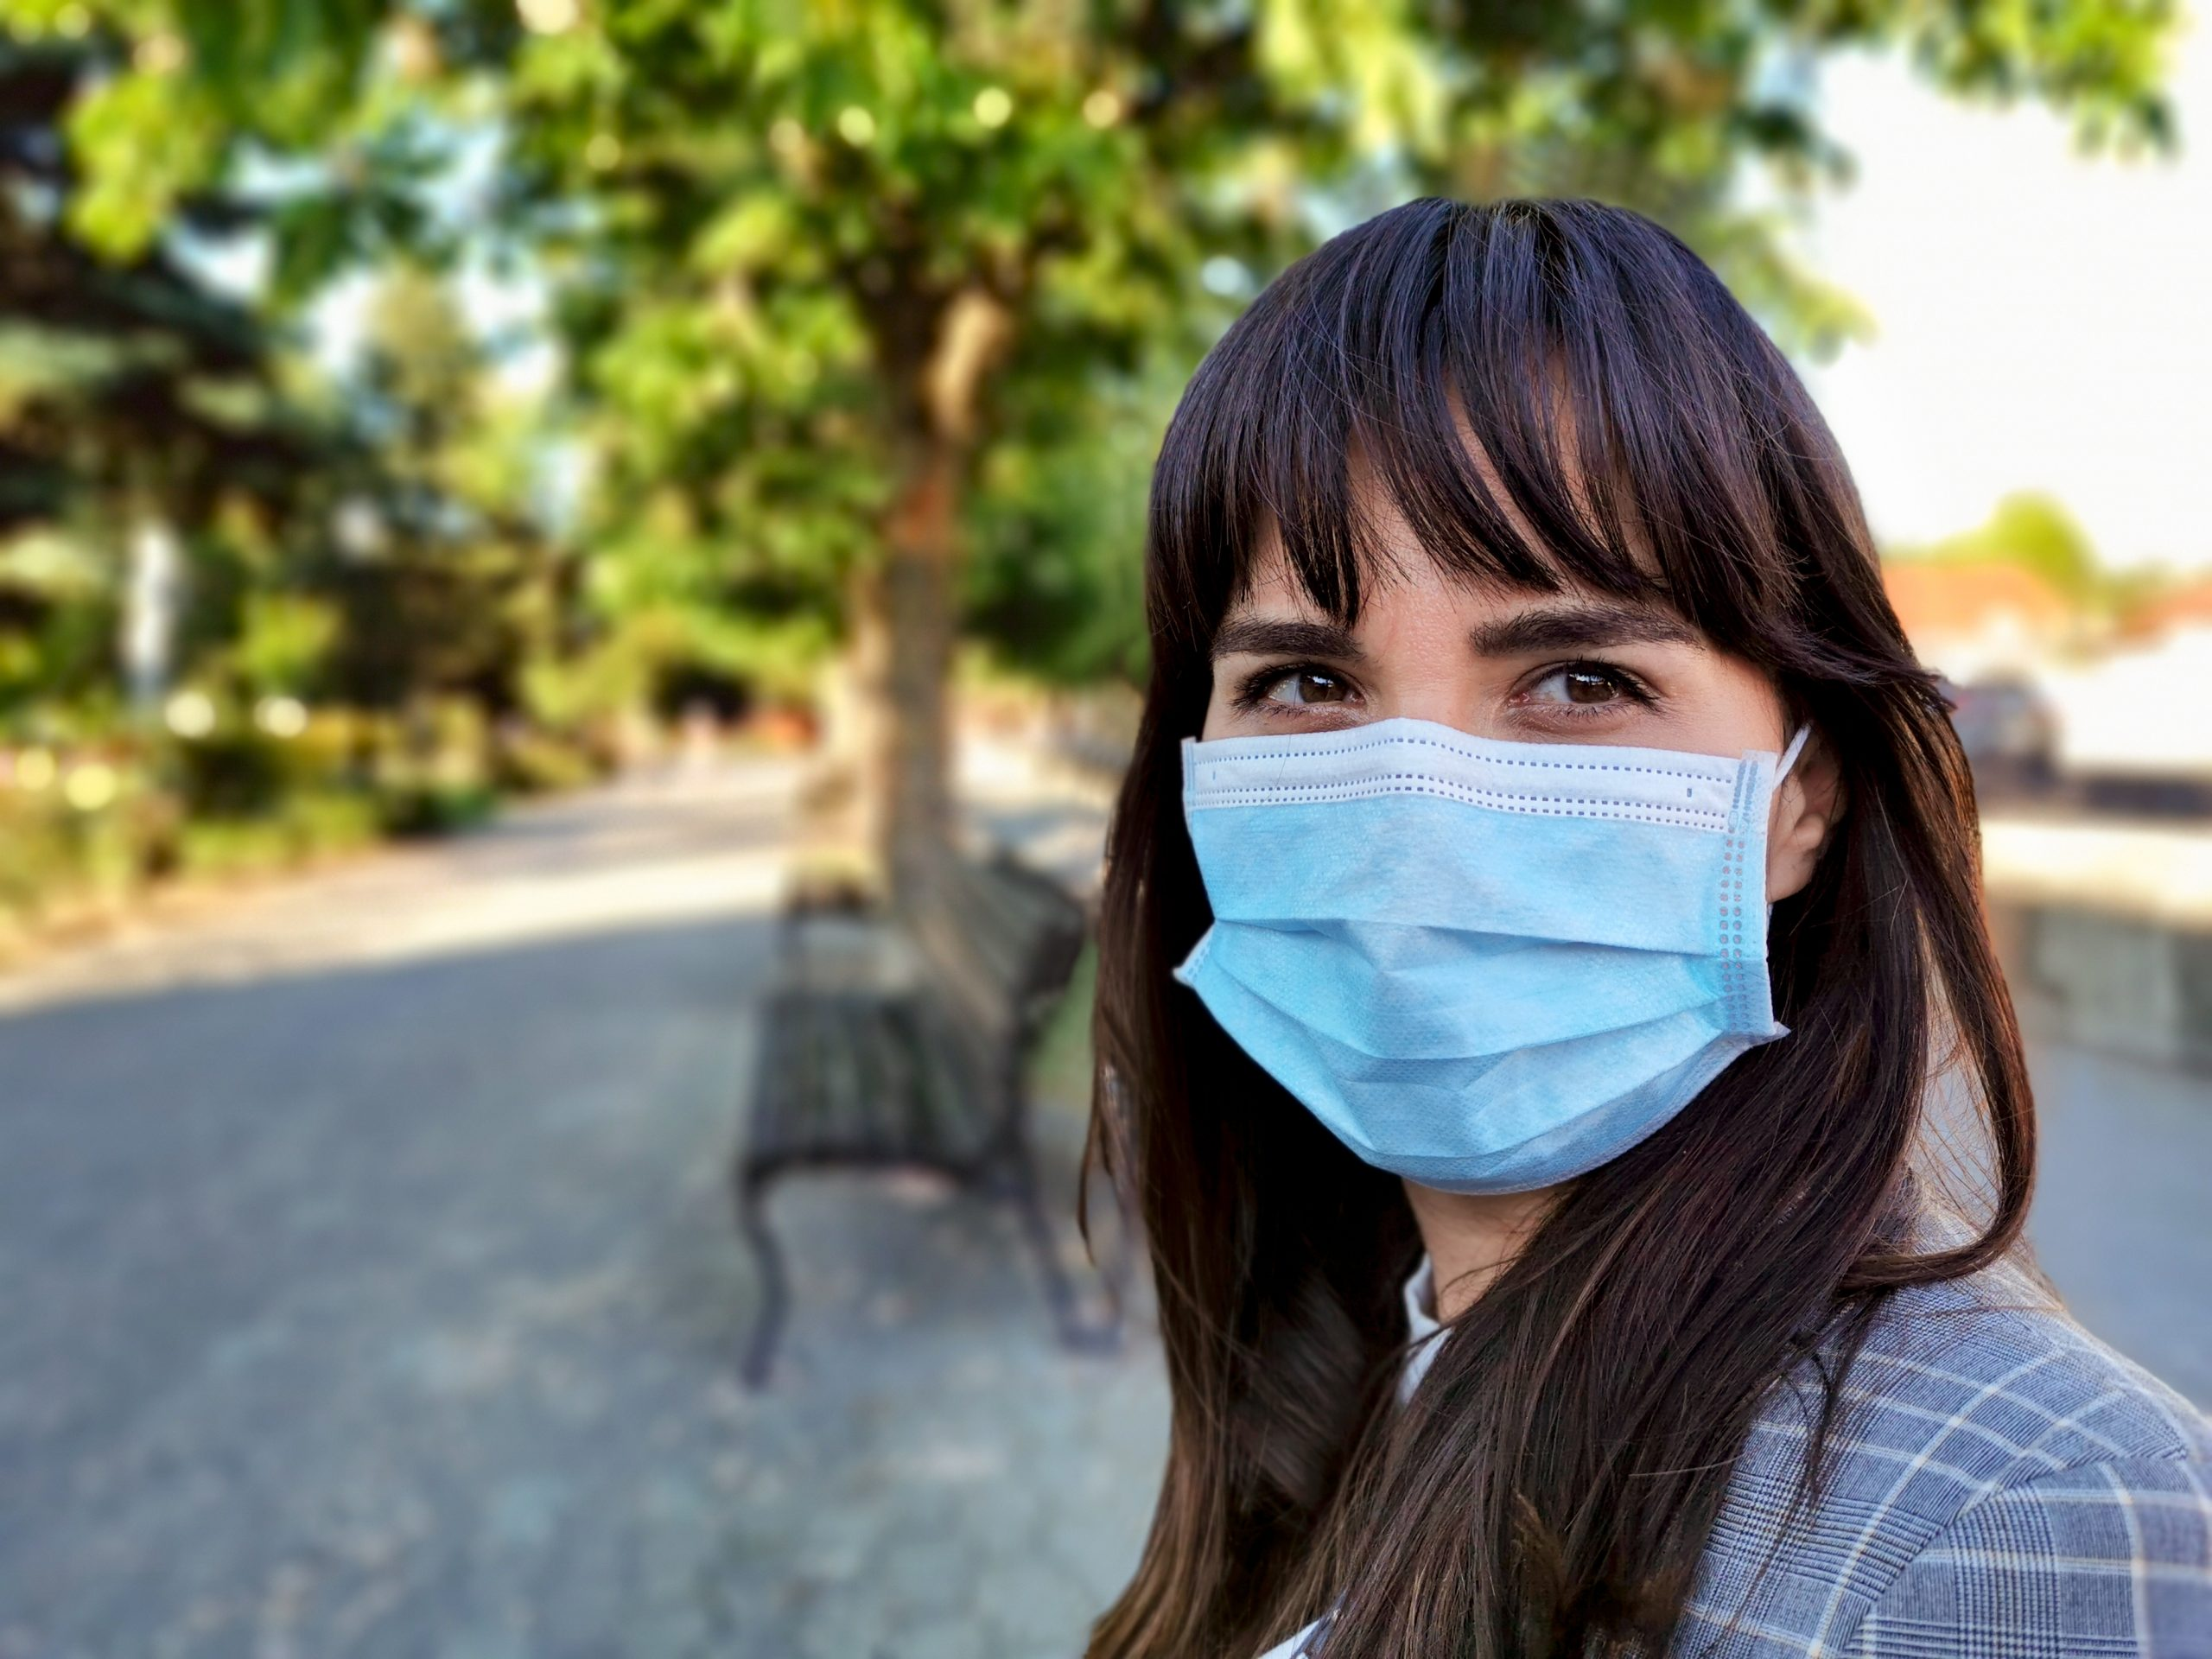 Young woman with bangs wearing a face mask in the city during COVID-19